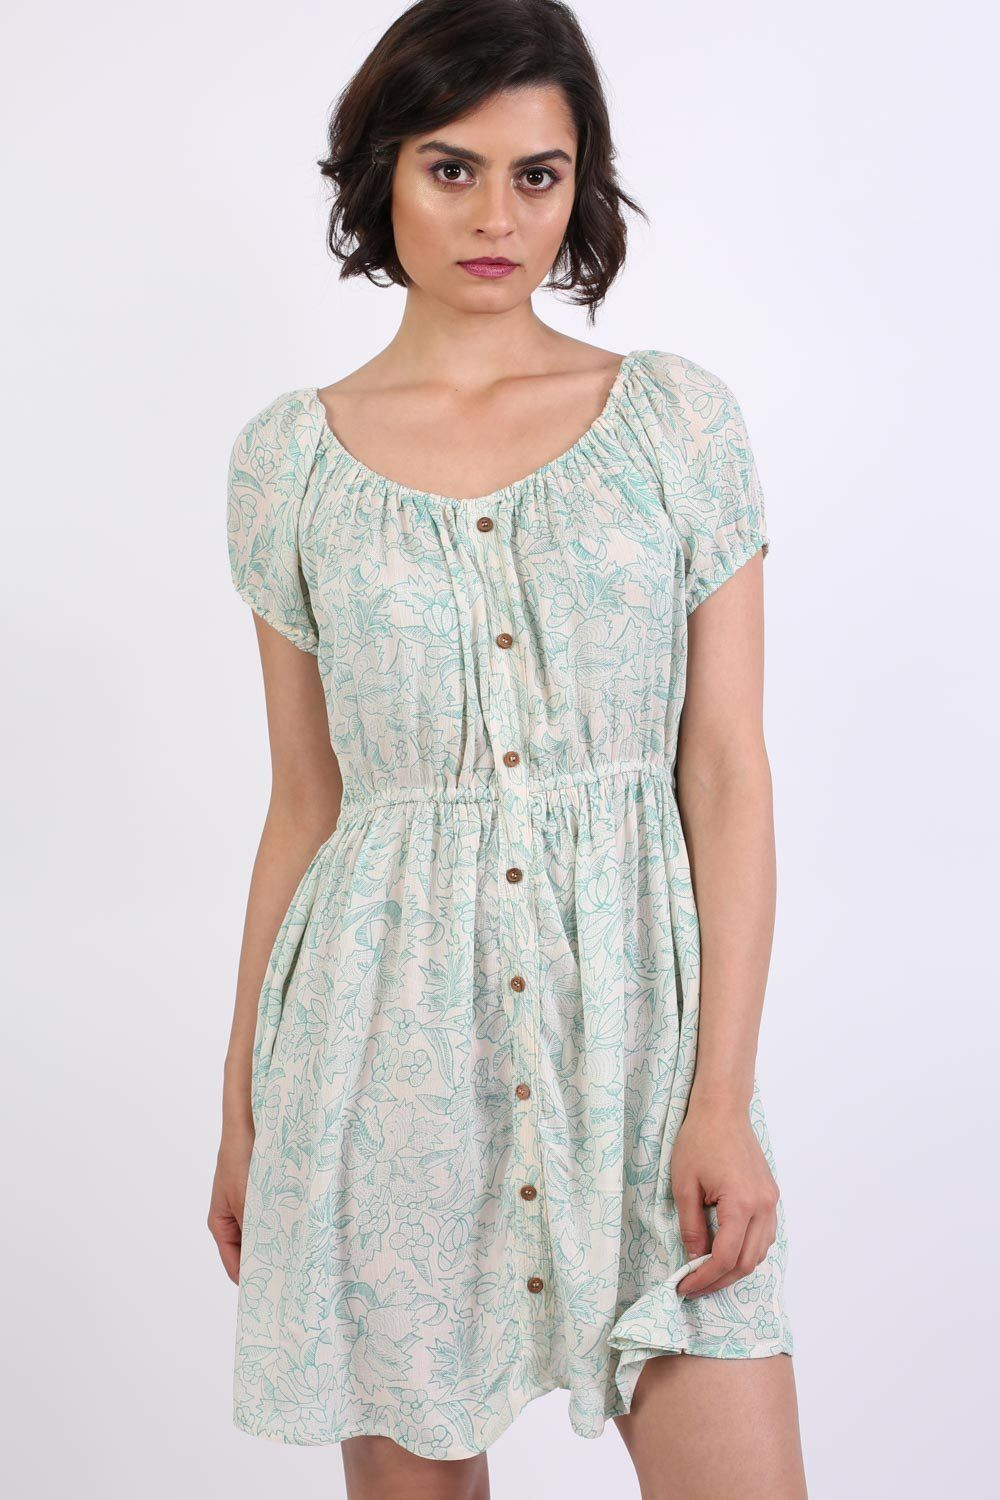 Scoop Neck Smock Printed Skater Mini Dress in Jade Green 0